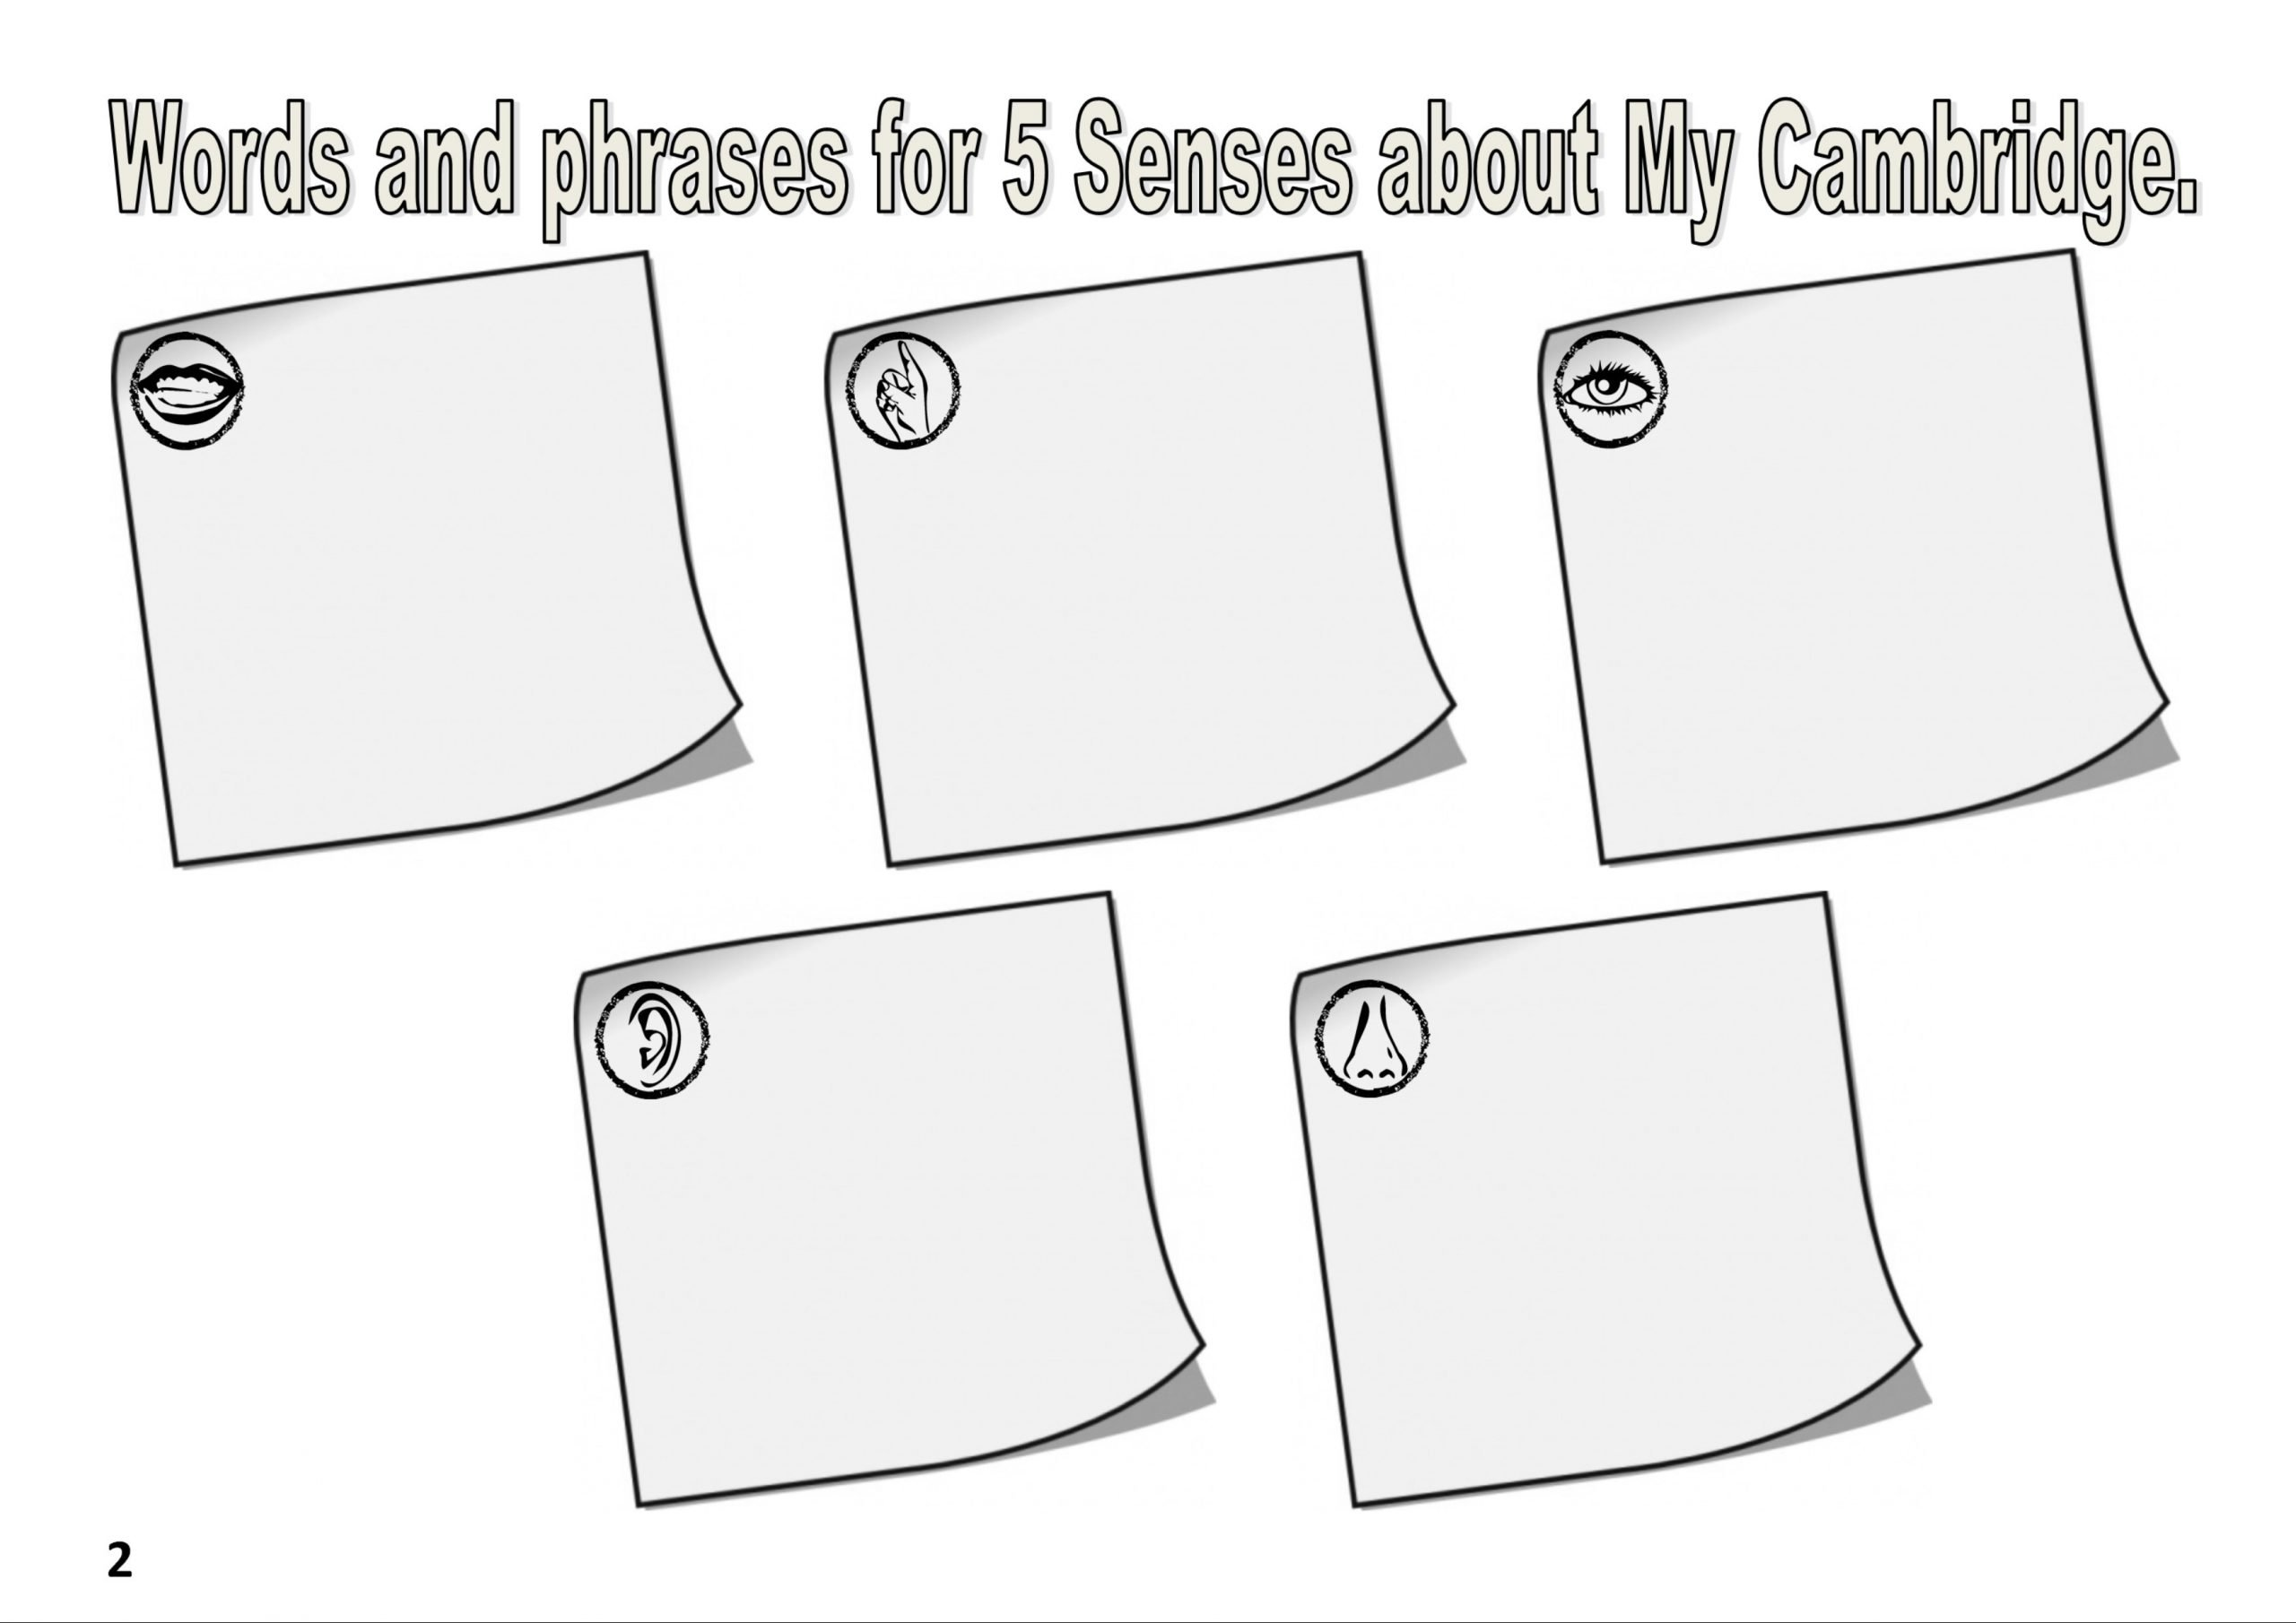 Five Senses Worksheets Pdf 5 Senses Creating My Cambridge